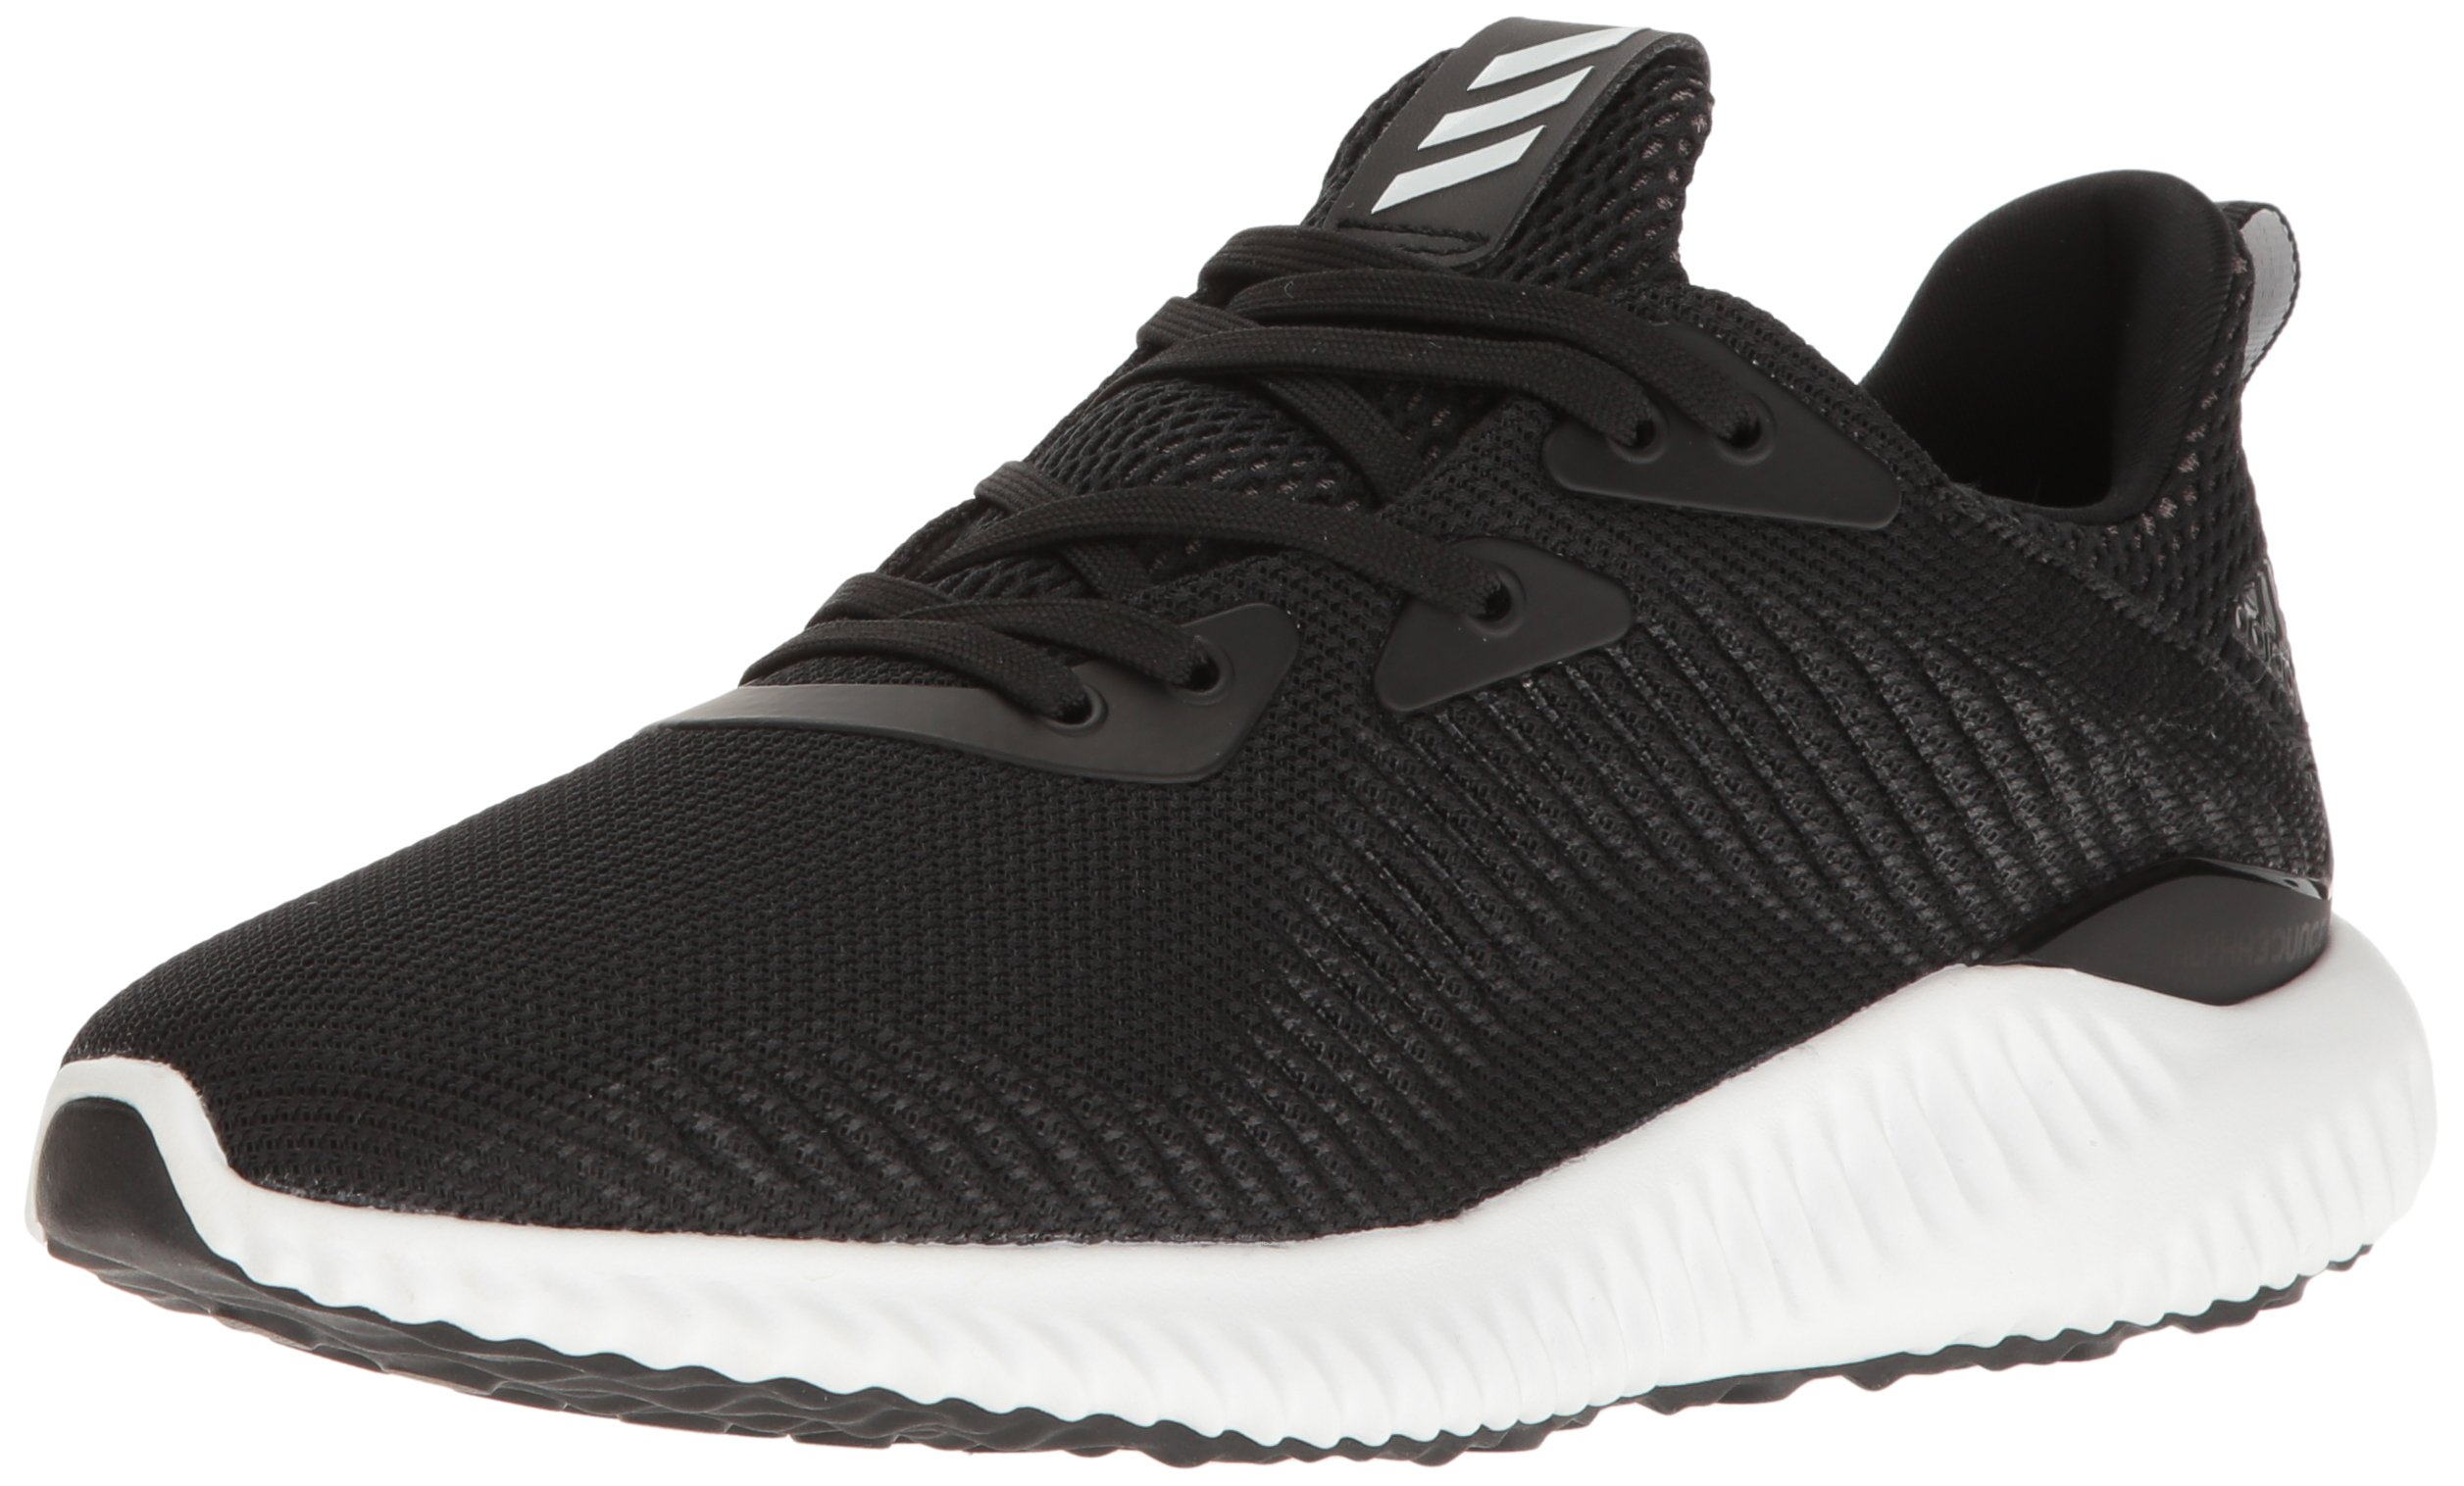 d0d7c677c Galleon - Adidas Performance Women s Alphabounce 1 W Running Shoe ...